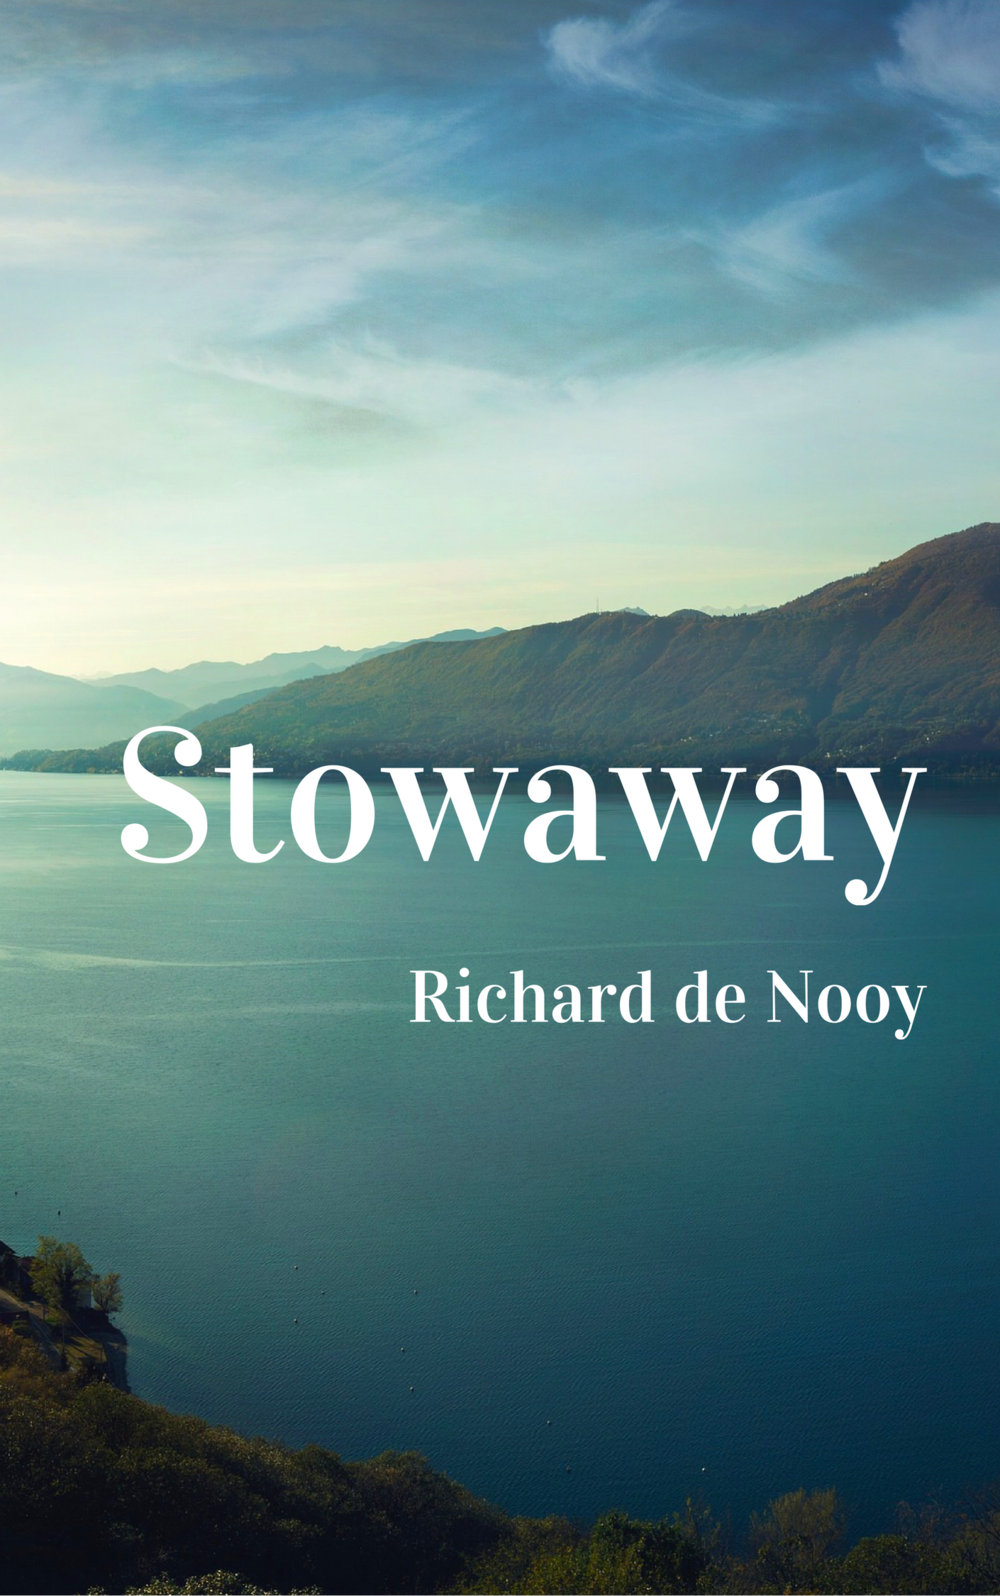 Stowaway by Richard de Nooy